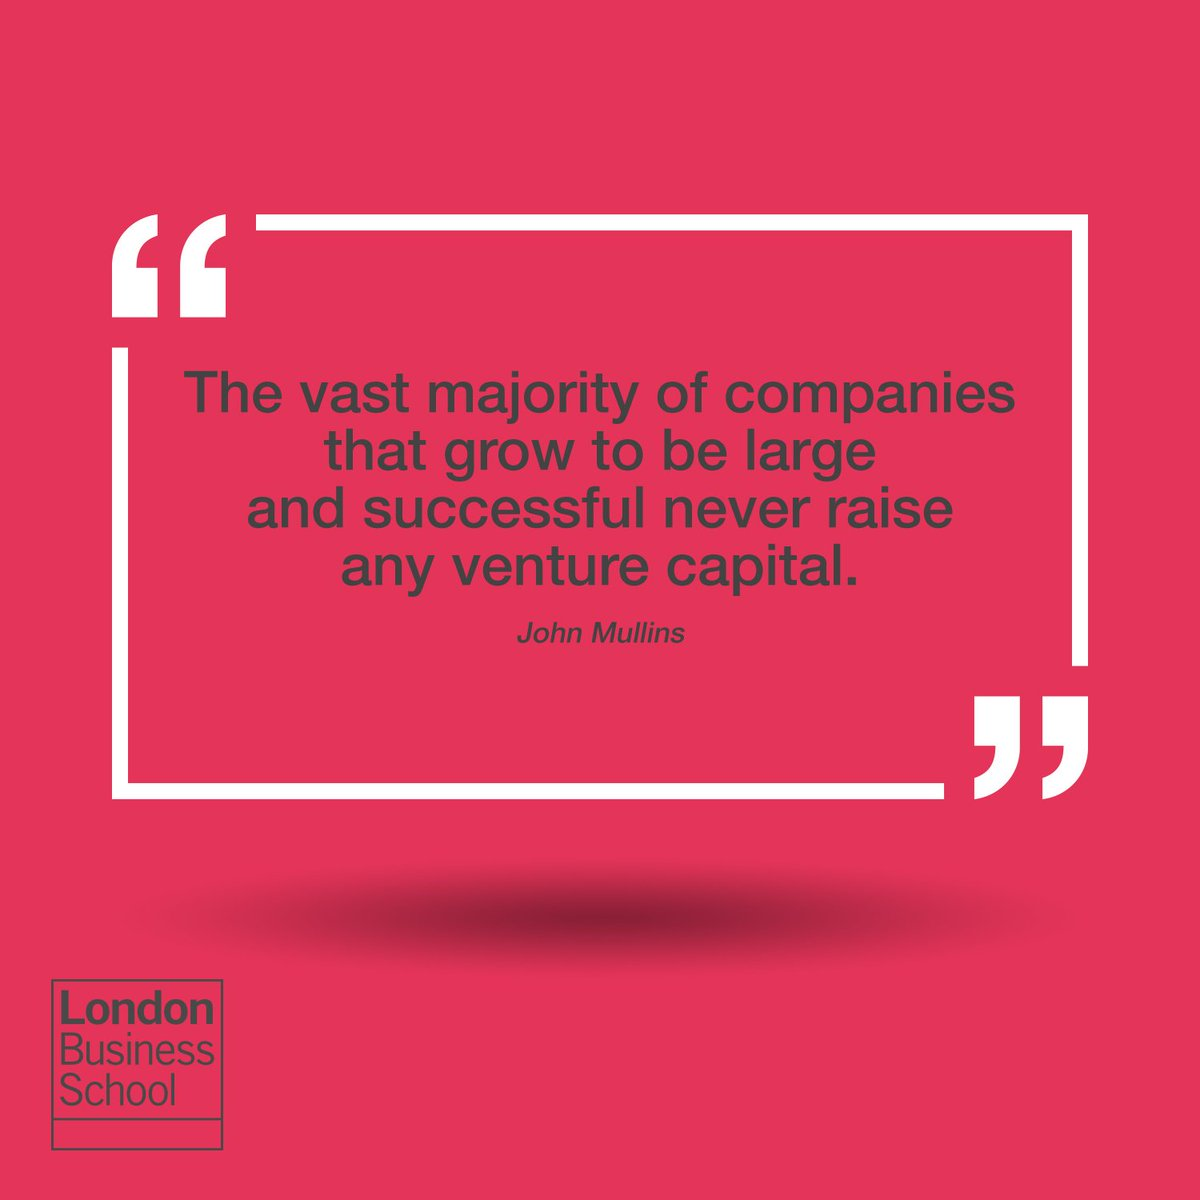 """The vast majority of companies that grow to be large and successful never raise any venture capital"" https://t.co/I68lqwBTFs"